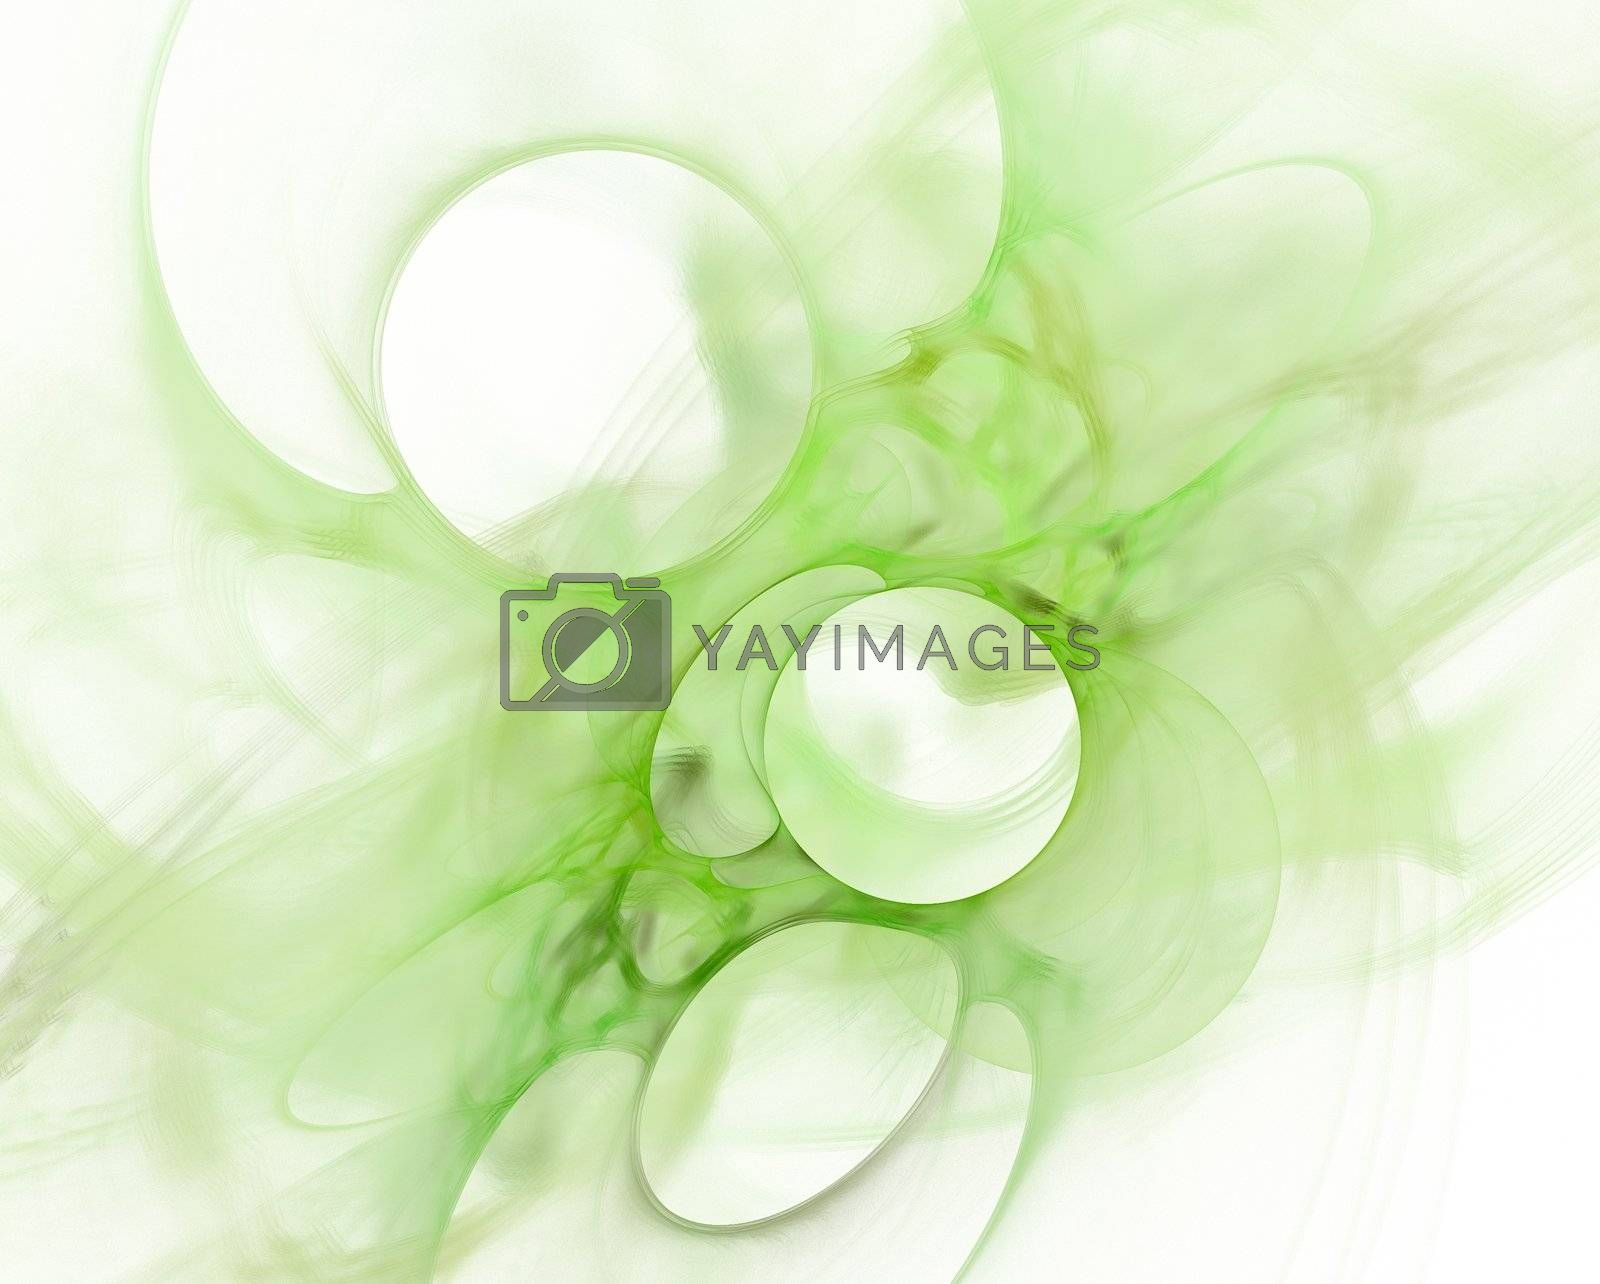 Royalty free image of Abstract green background by tomatto